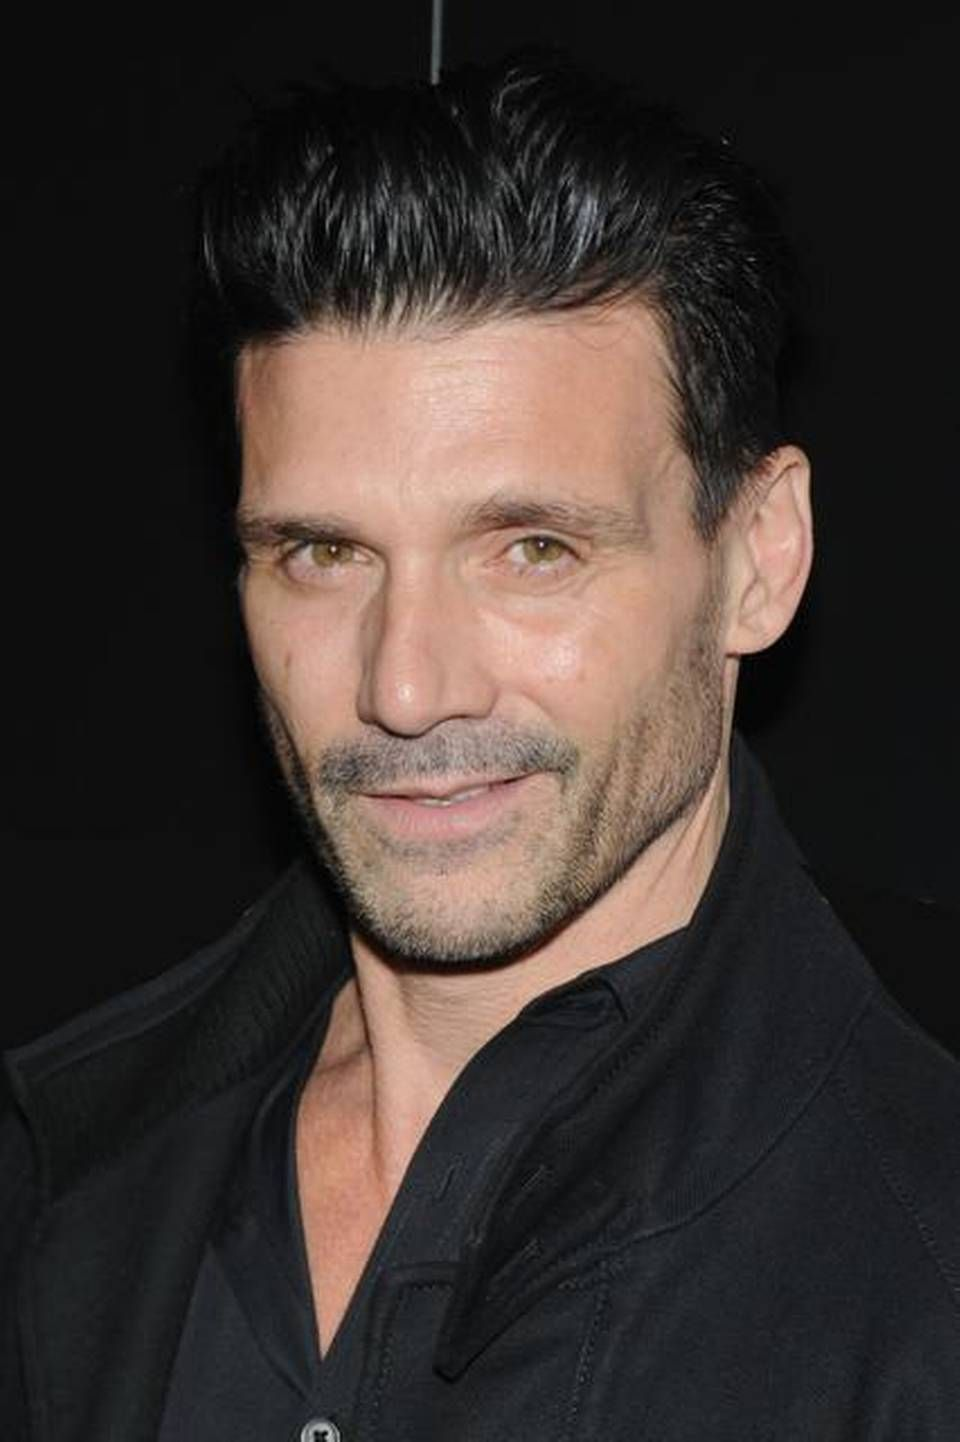 frank grillo giffrank grillo gif, frank grillo tumblr, frank grillo gif hunt, frank grillo photoshoot, frank grillo the grey, frank grillo captain america, frank grillo imdb, frank grillo the purge, frank grillo workout, frank grillo gallery, frank grillo hairstyle, frank grillo bio, frank grillo eye color, frank grillo fansite, frank grillo sons, frank grillo wiki, frank grillo interpol, frank grillo joe rogan, frank grillo warrior, frank grillo instagram